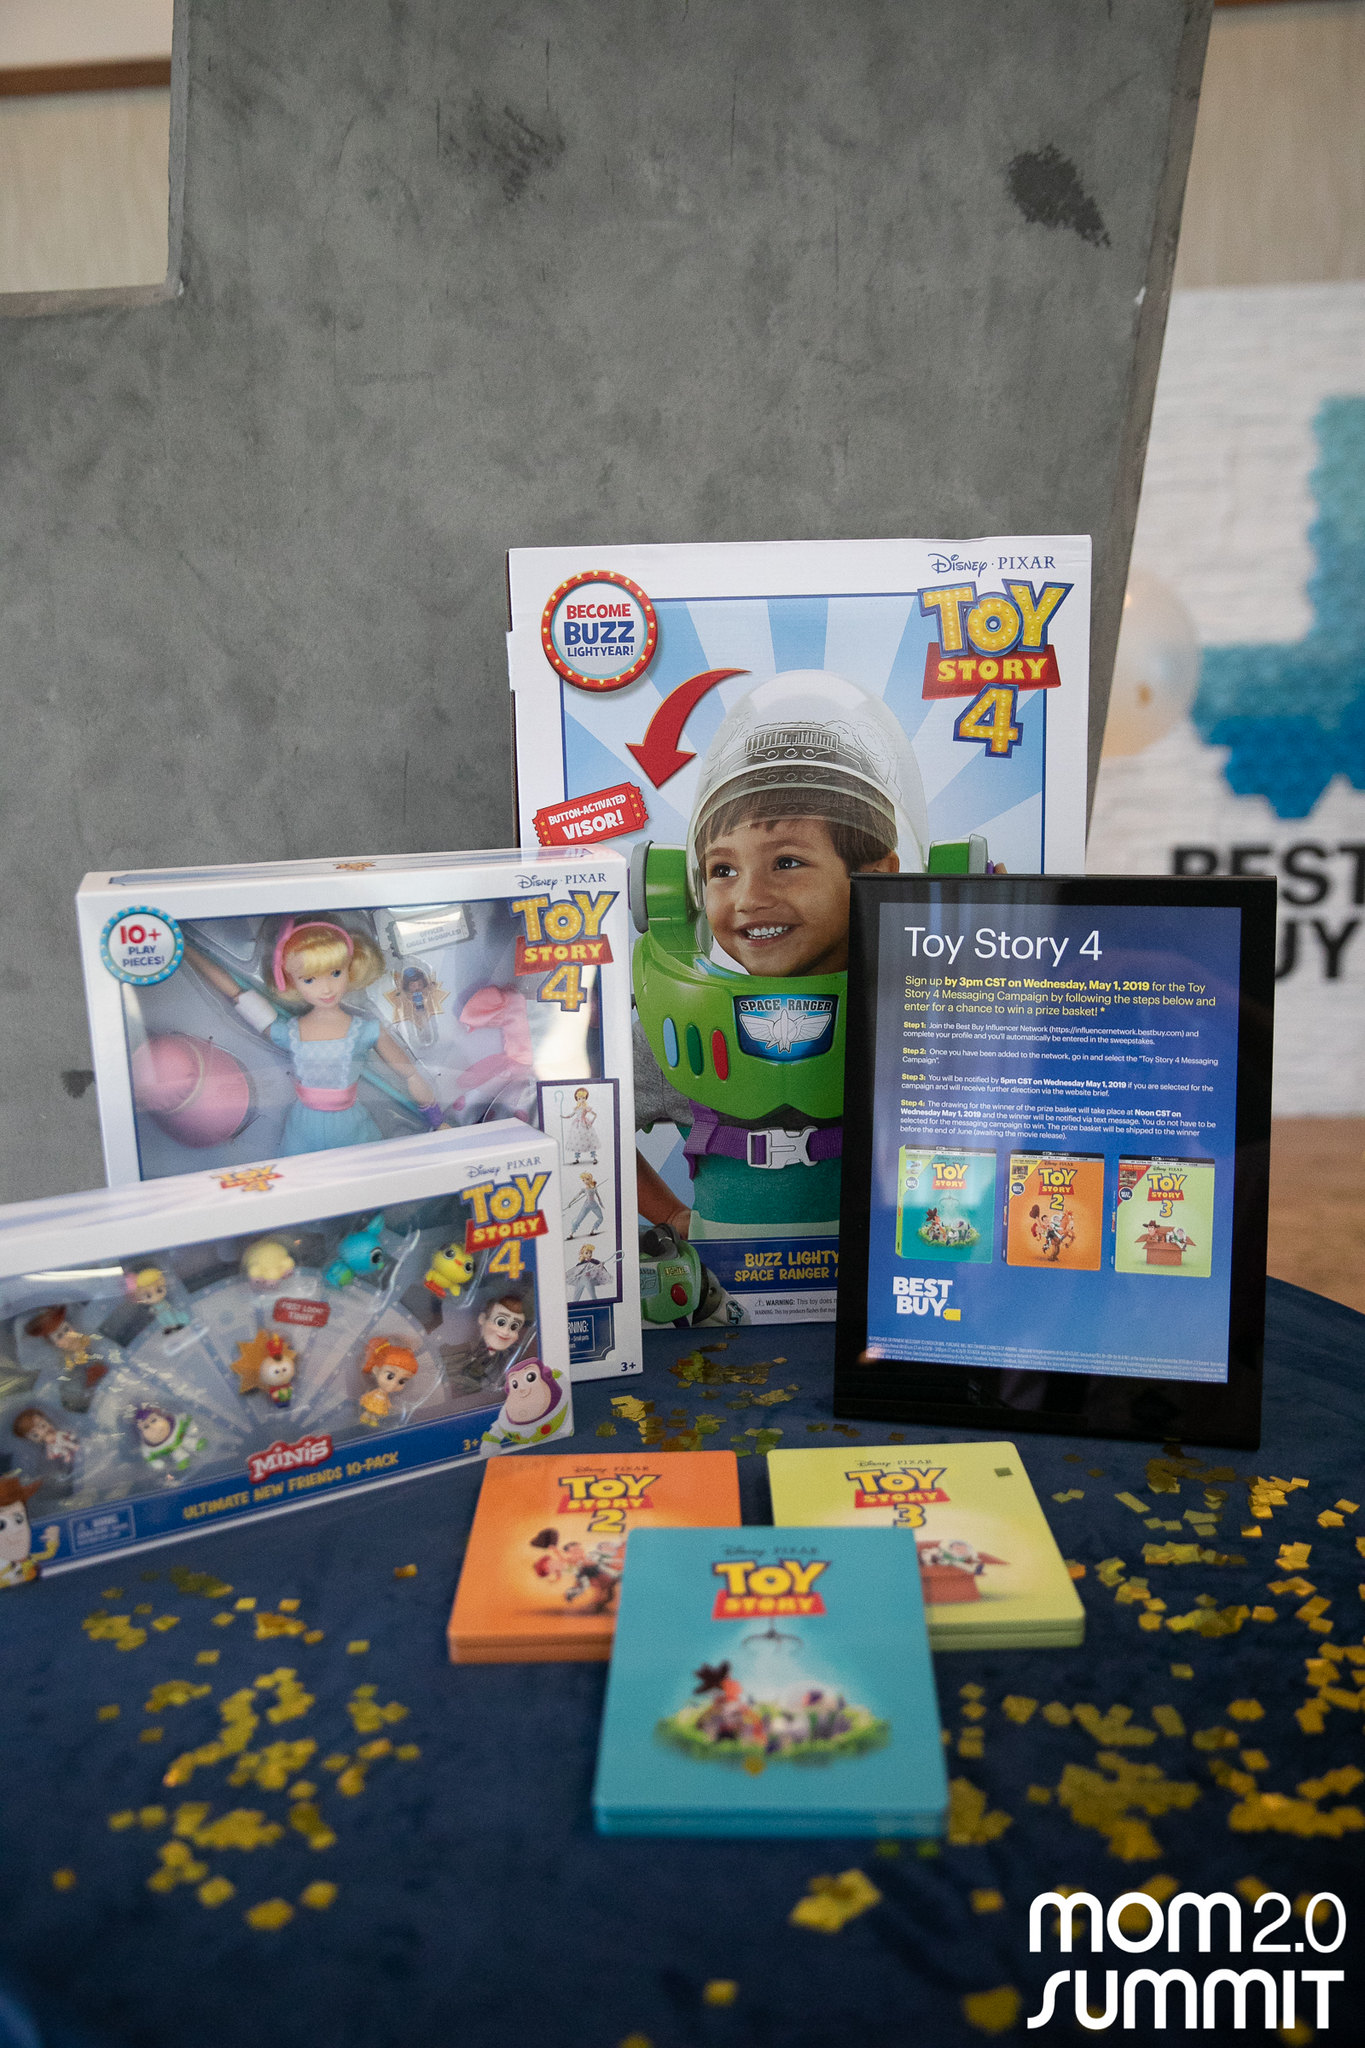 Did you know you could pick up Toy Story 4 toys at your local Best Buy? #ad #ToyStory4